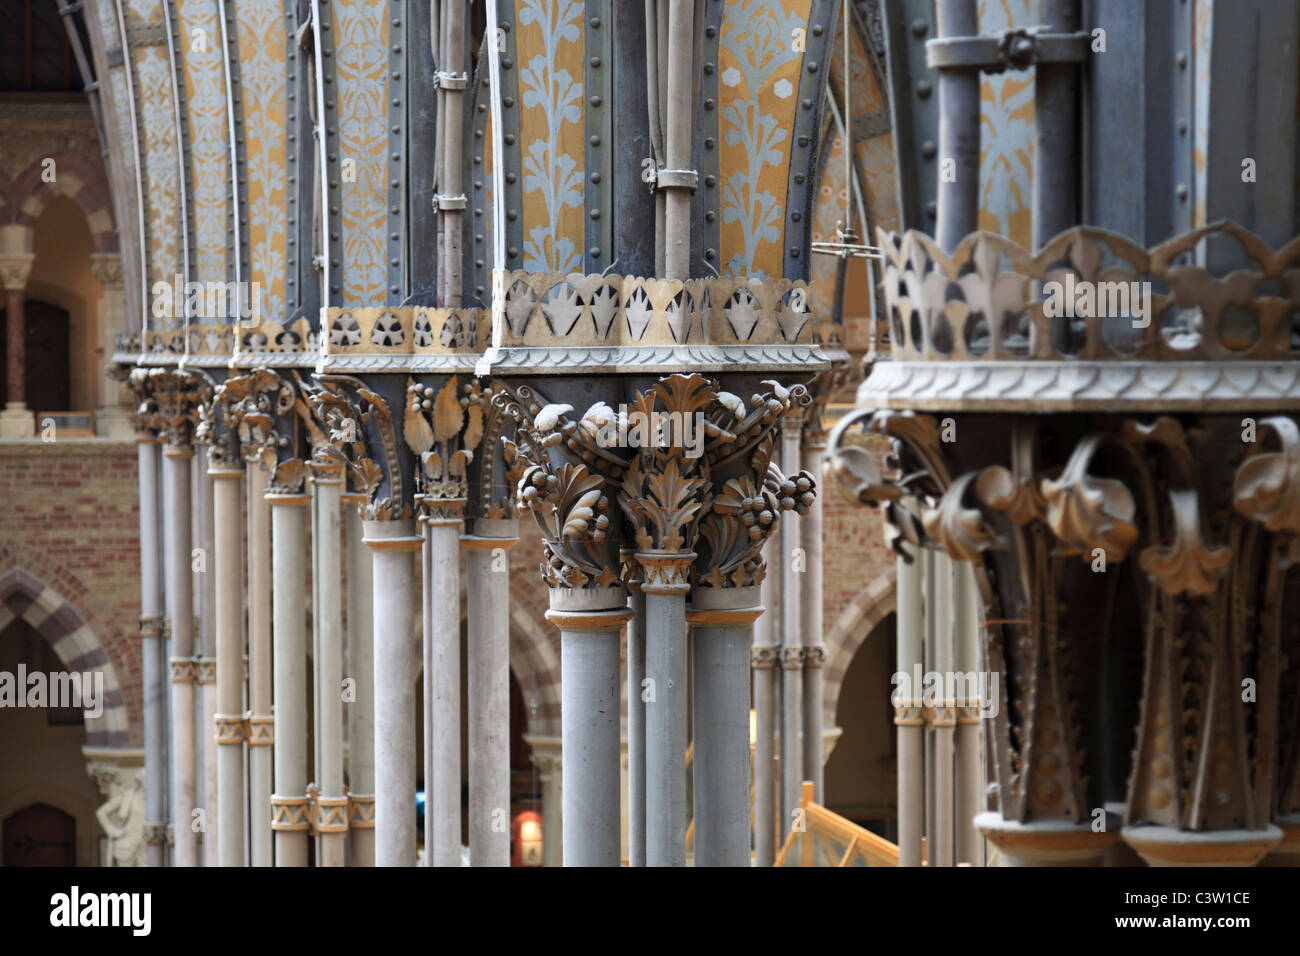 Ornate iron columns of the Oxford University Natural History Museum, Oxford, England - Stock Image